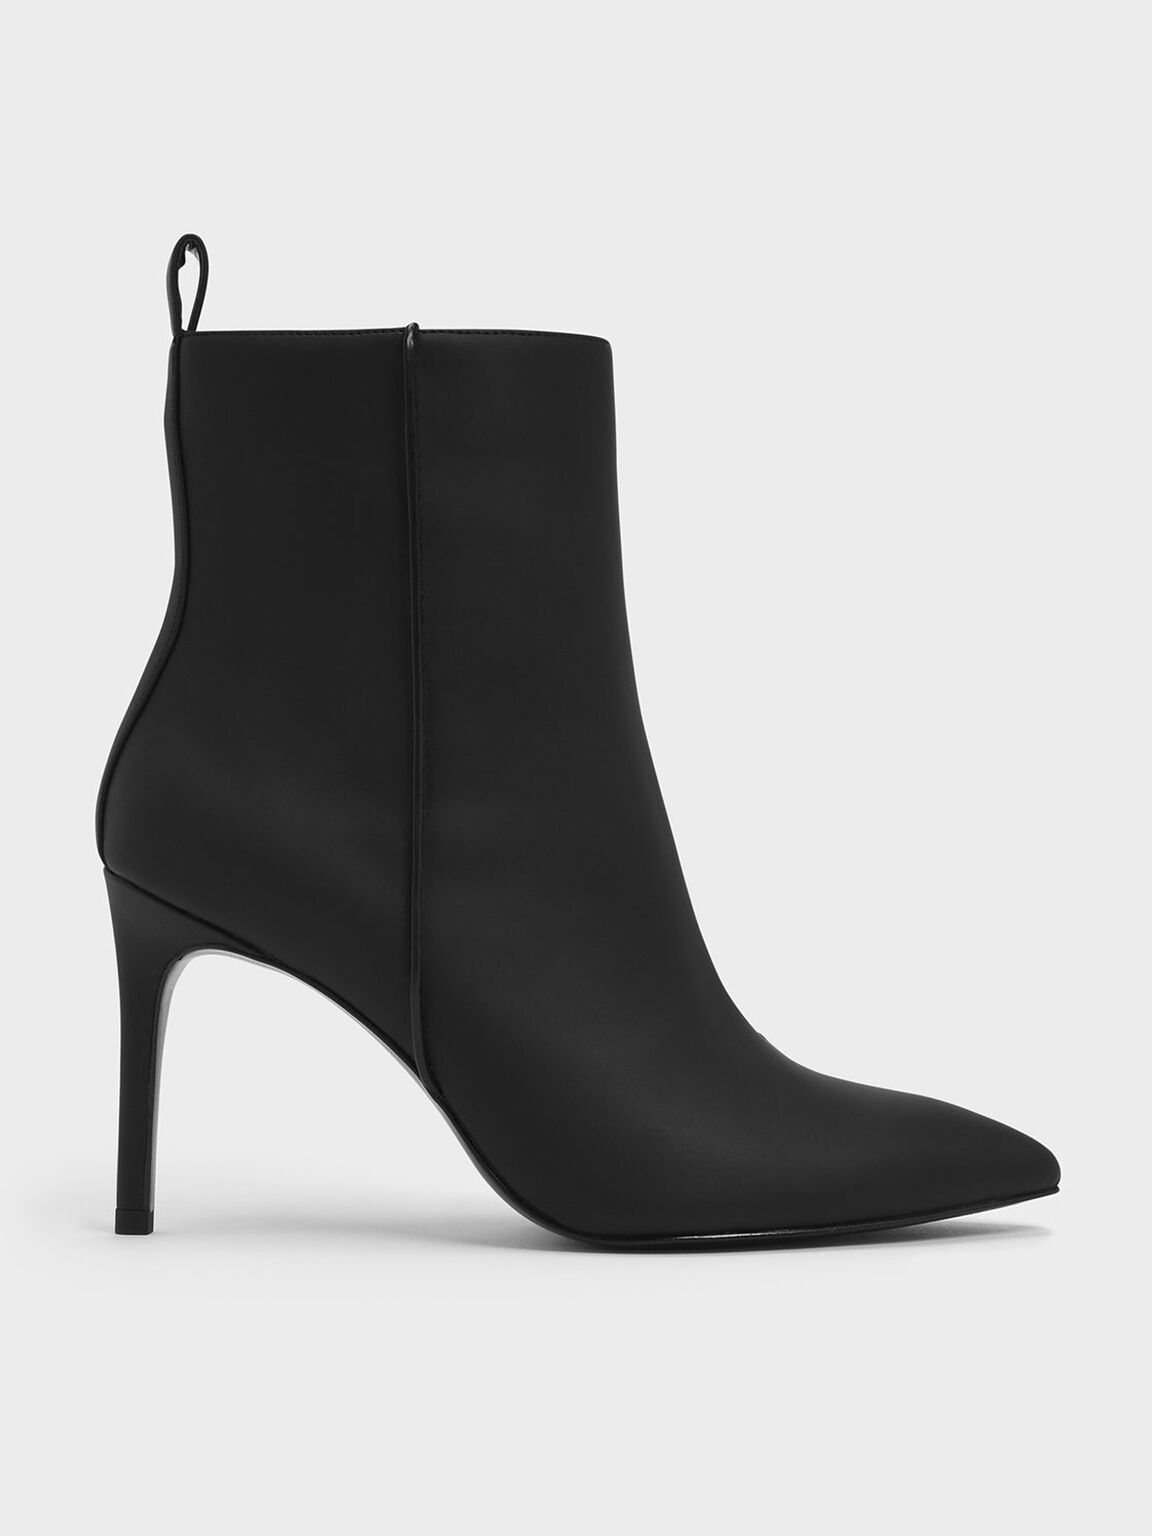 Pointed Toe Stiletto Heel Calf Boots, Black, hi-res